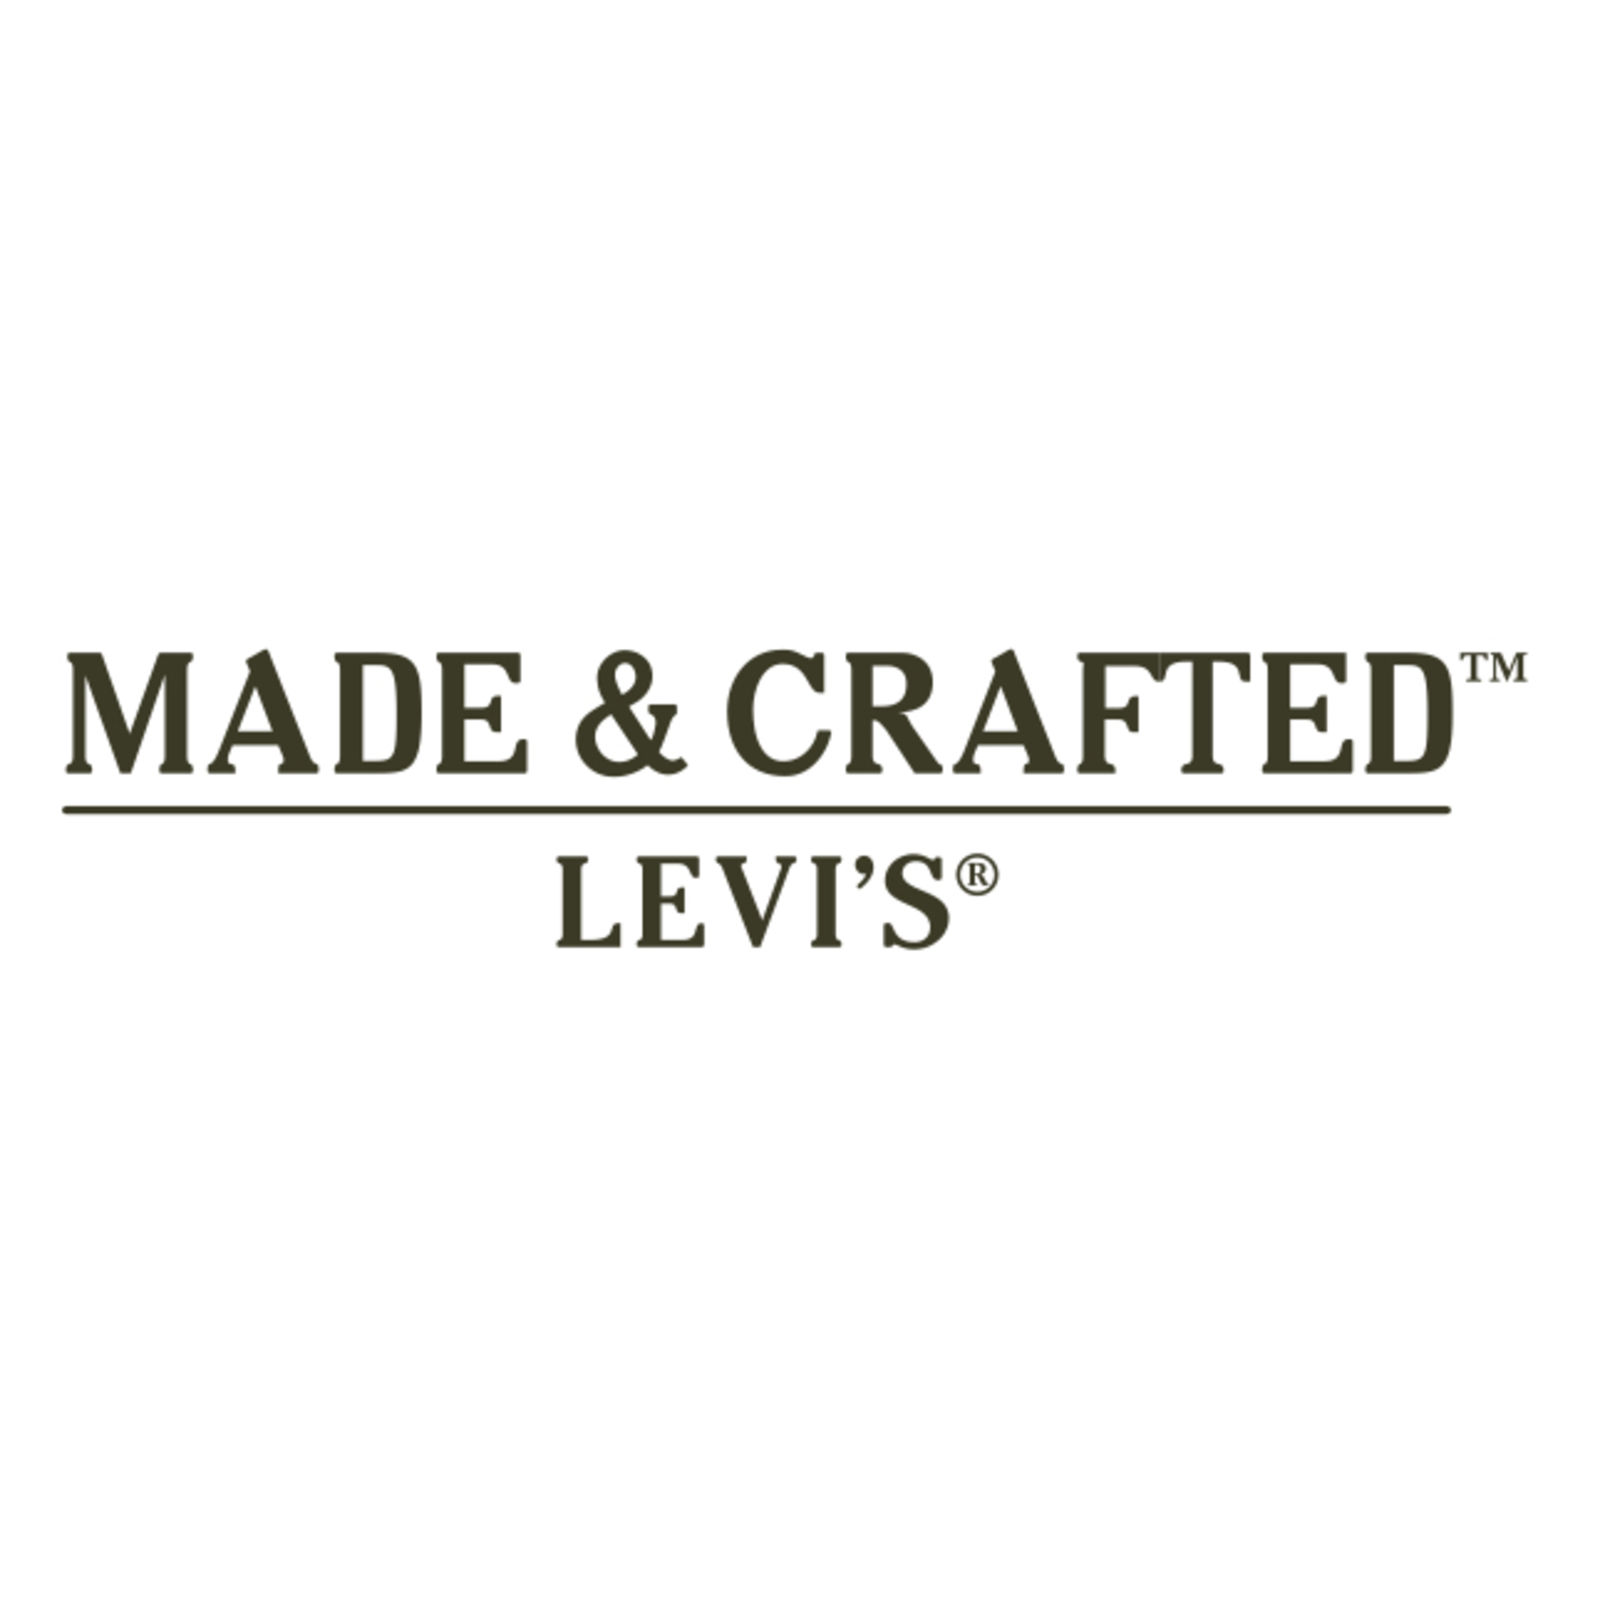 Levi's® MADE & CRAFTED™ (Image 1)